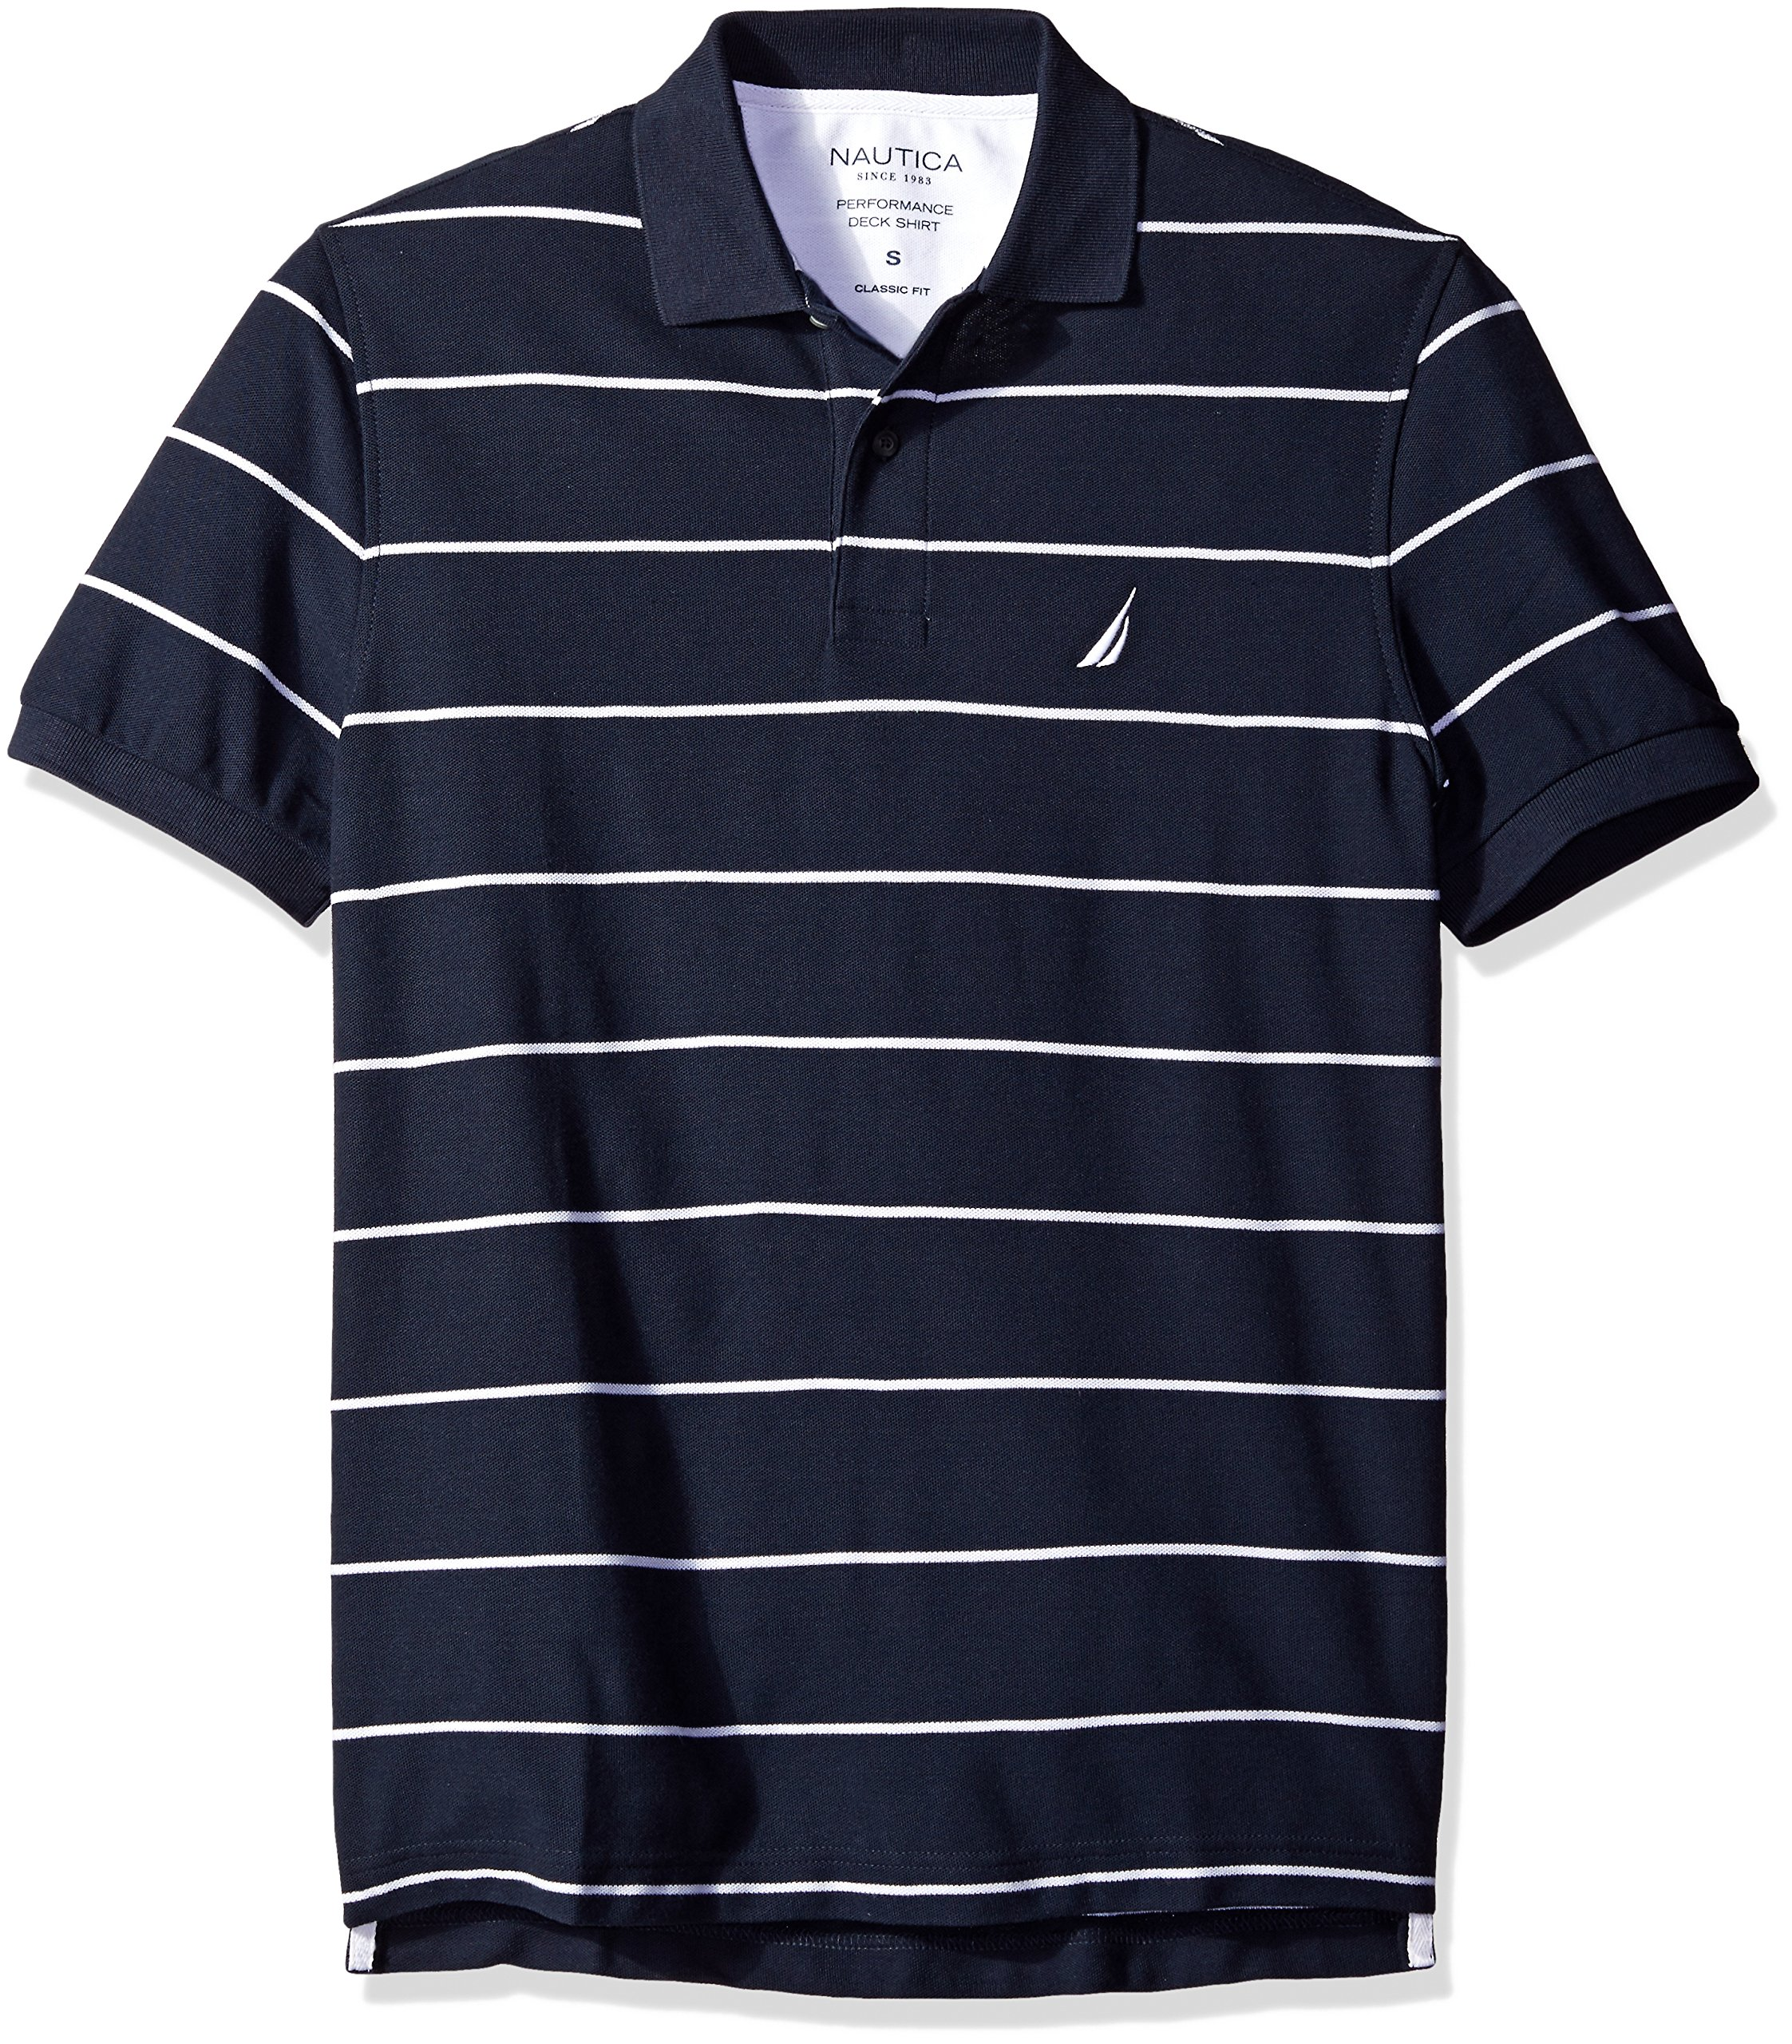 Nautica Men's Stripe Deck Anchor Polo, Navy, XX-Large by Nautica